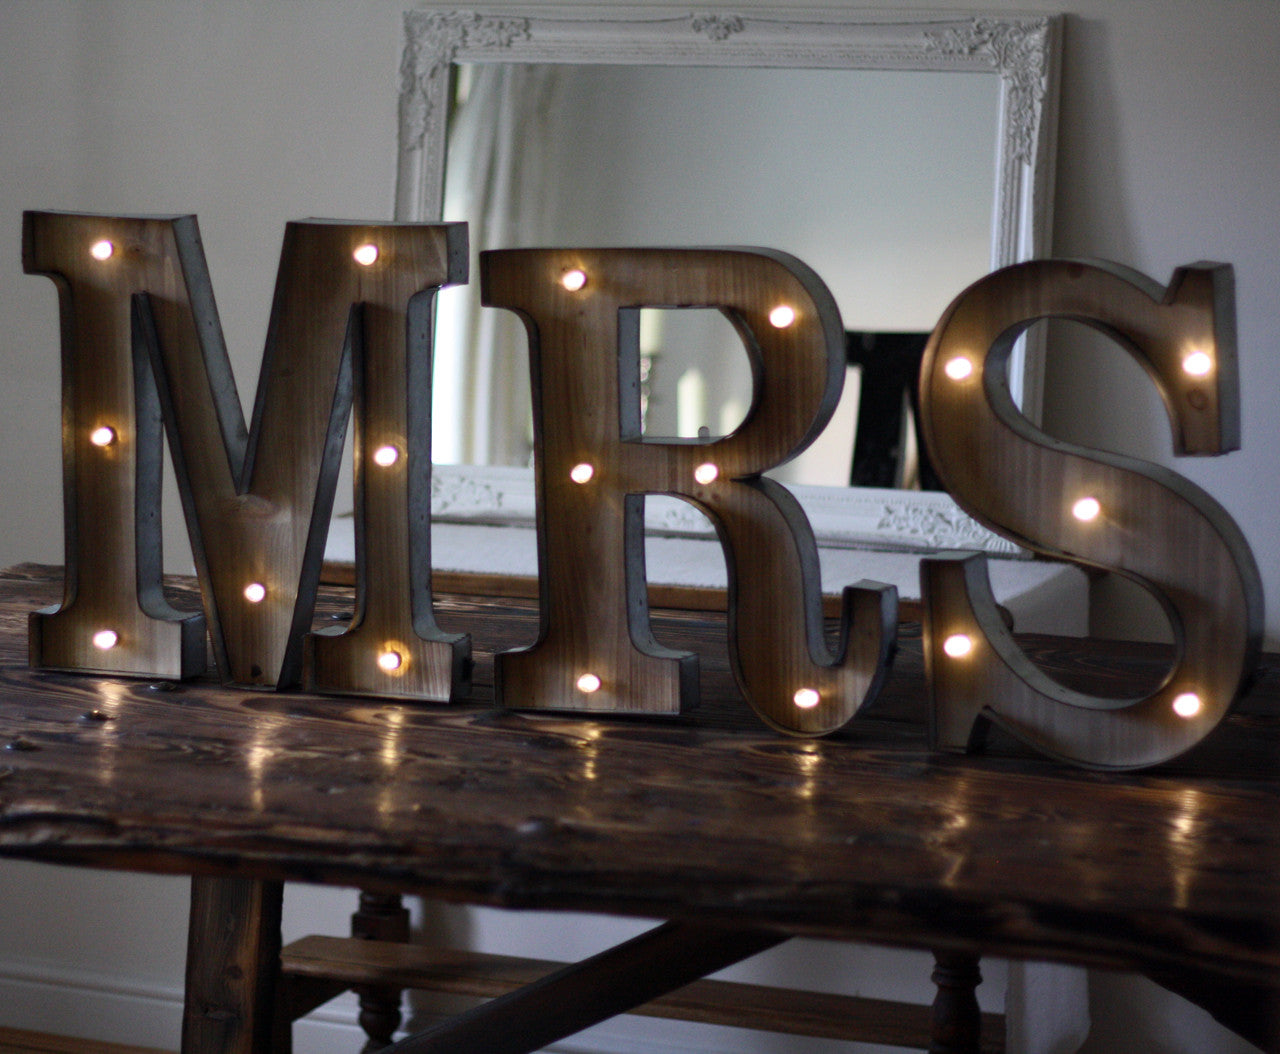 Tin Letters With Lights Adorable Carnival Light Up Letters Mrs  The Wedding Of My Dreams 2018